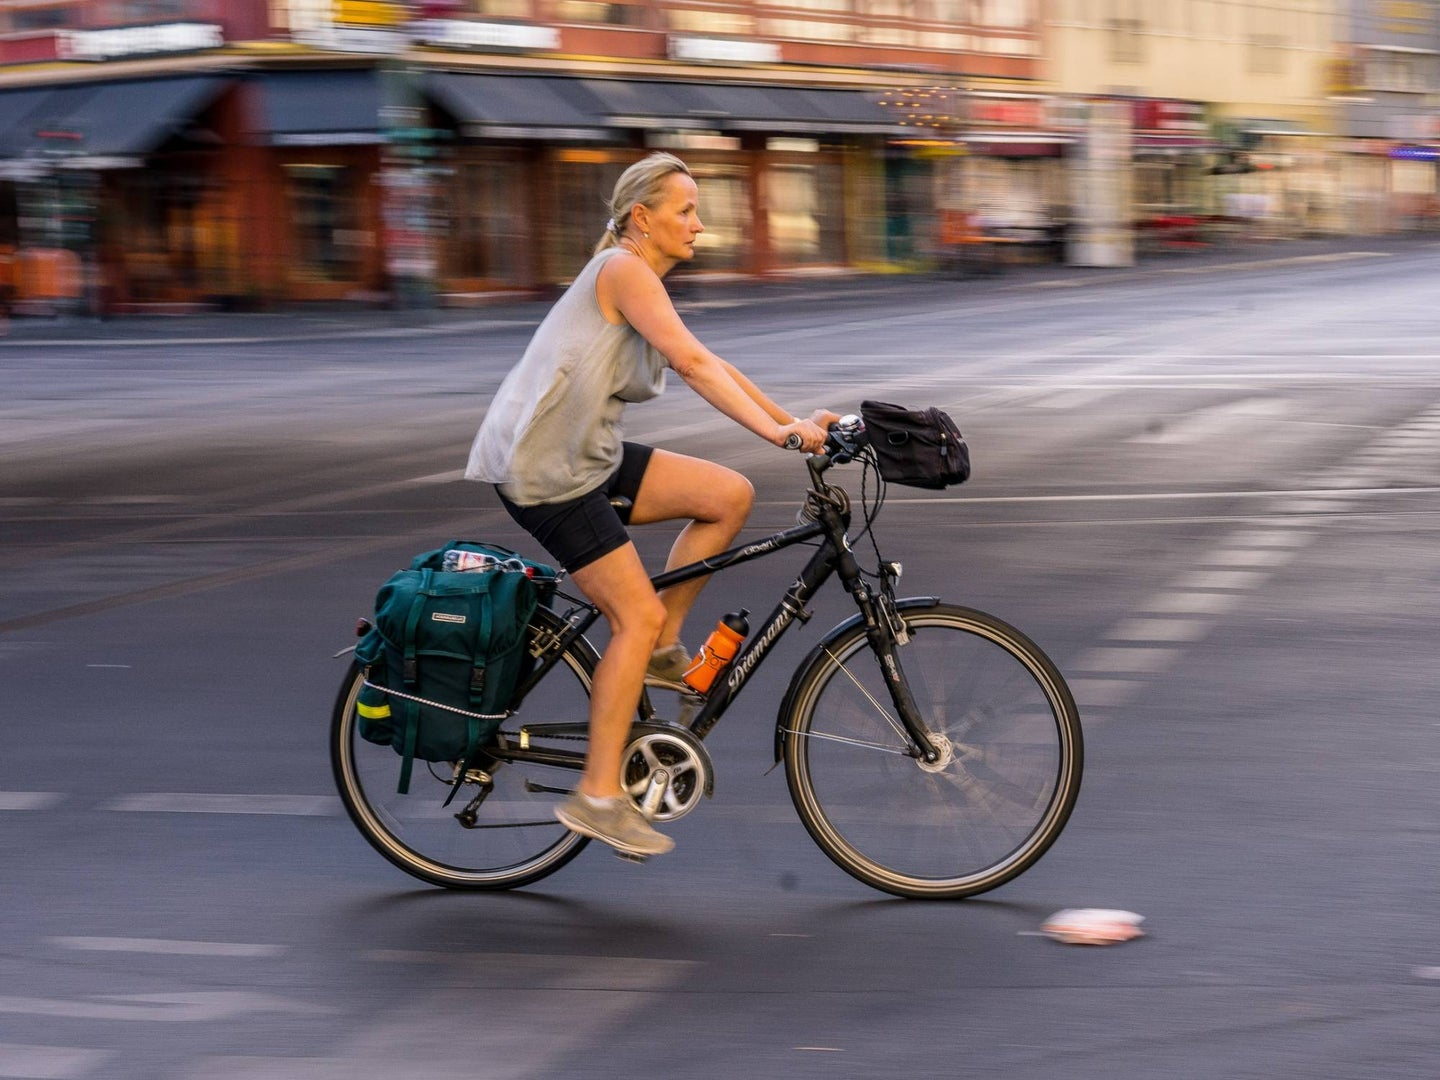 peron riding a bike in the city